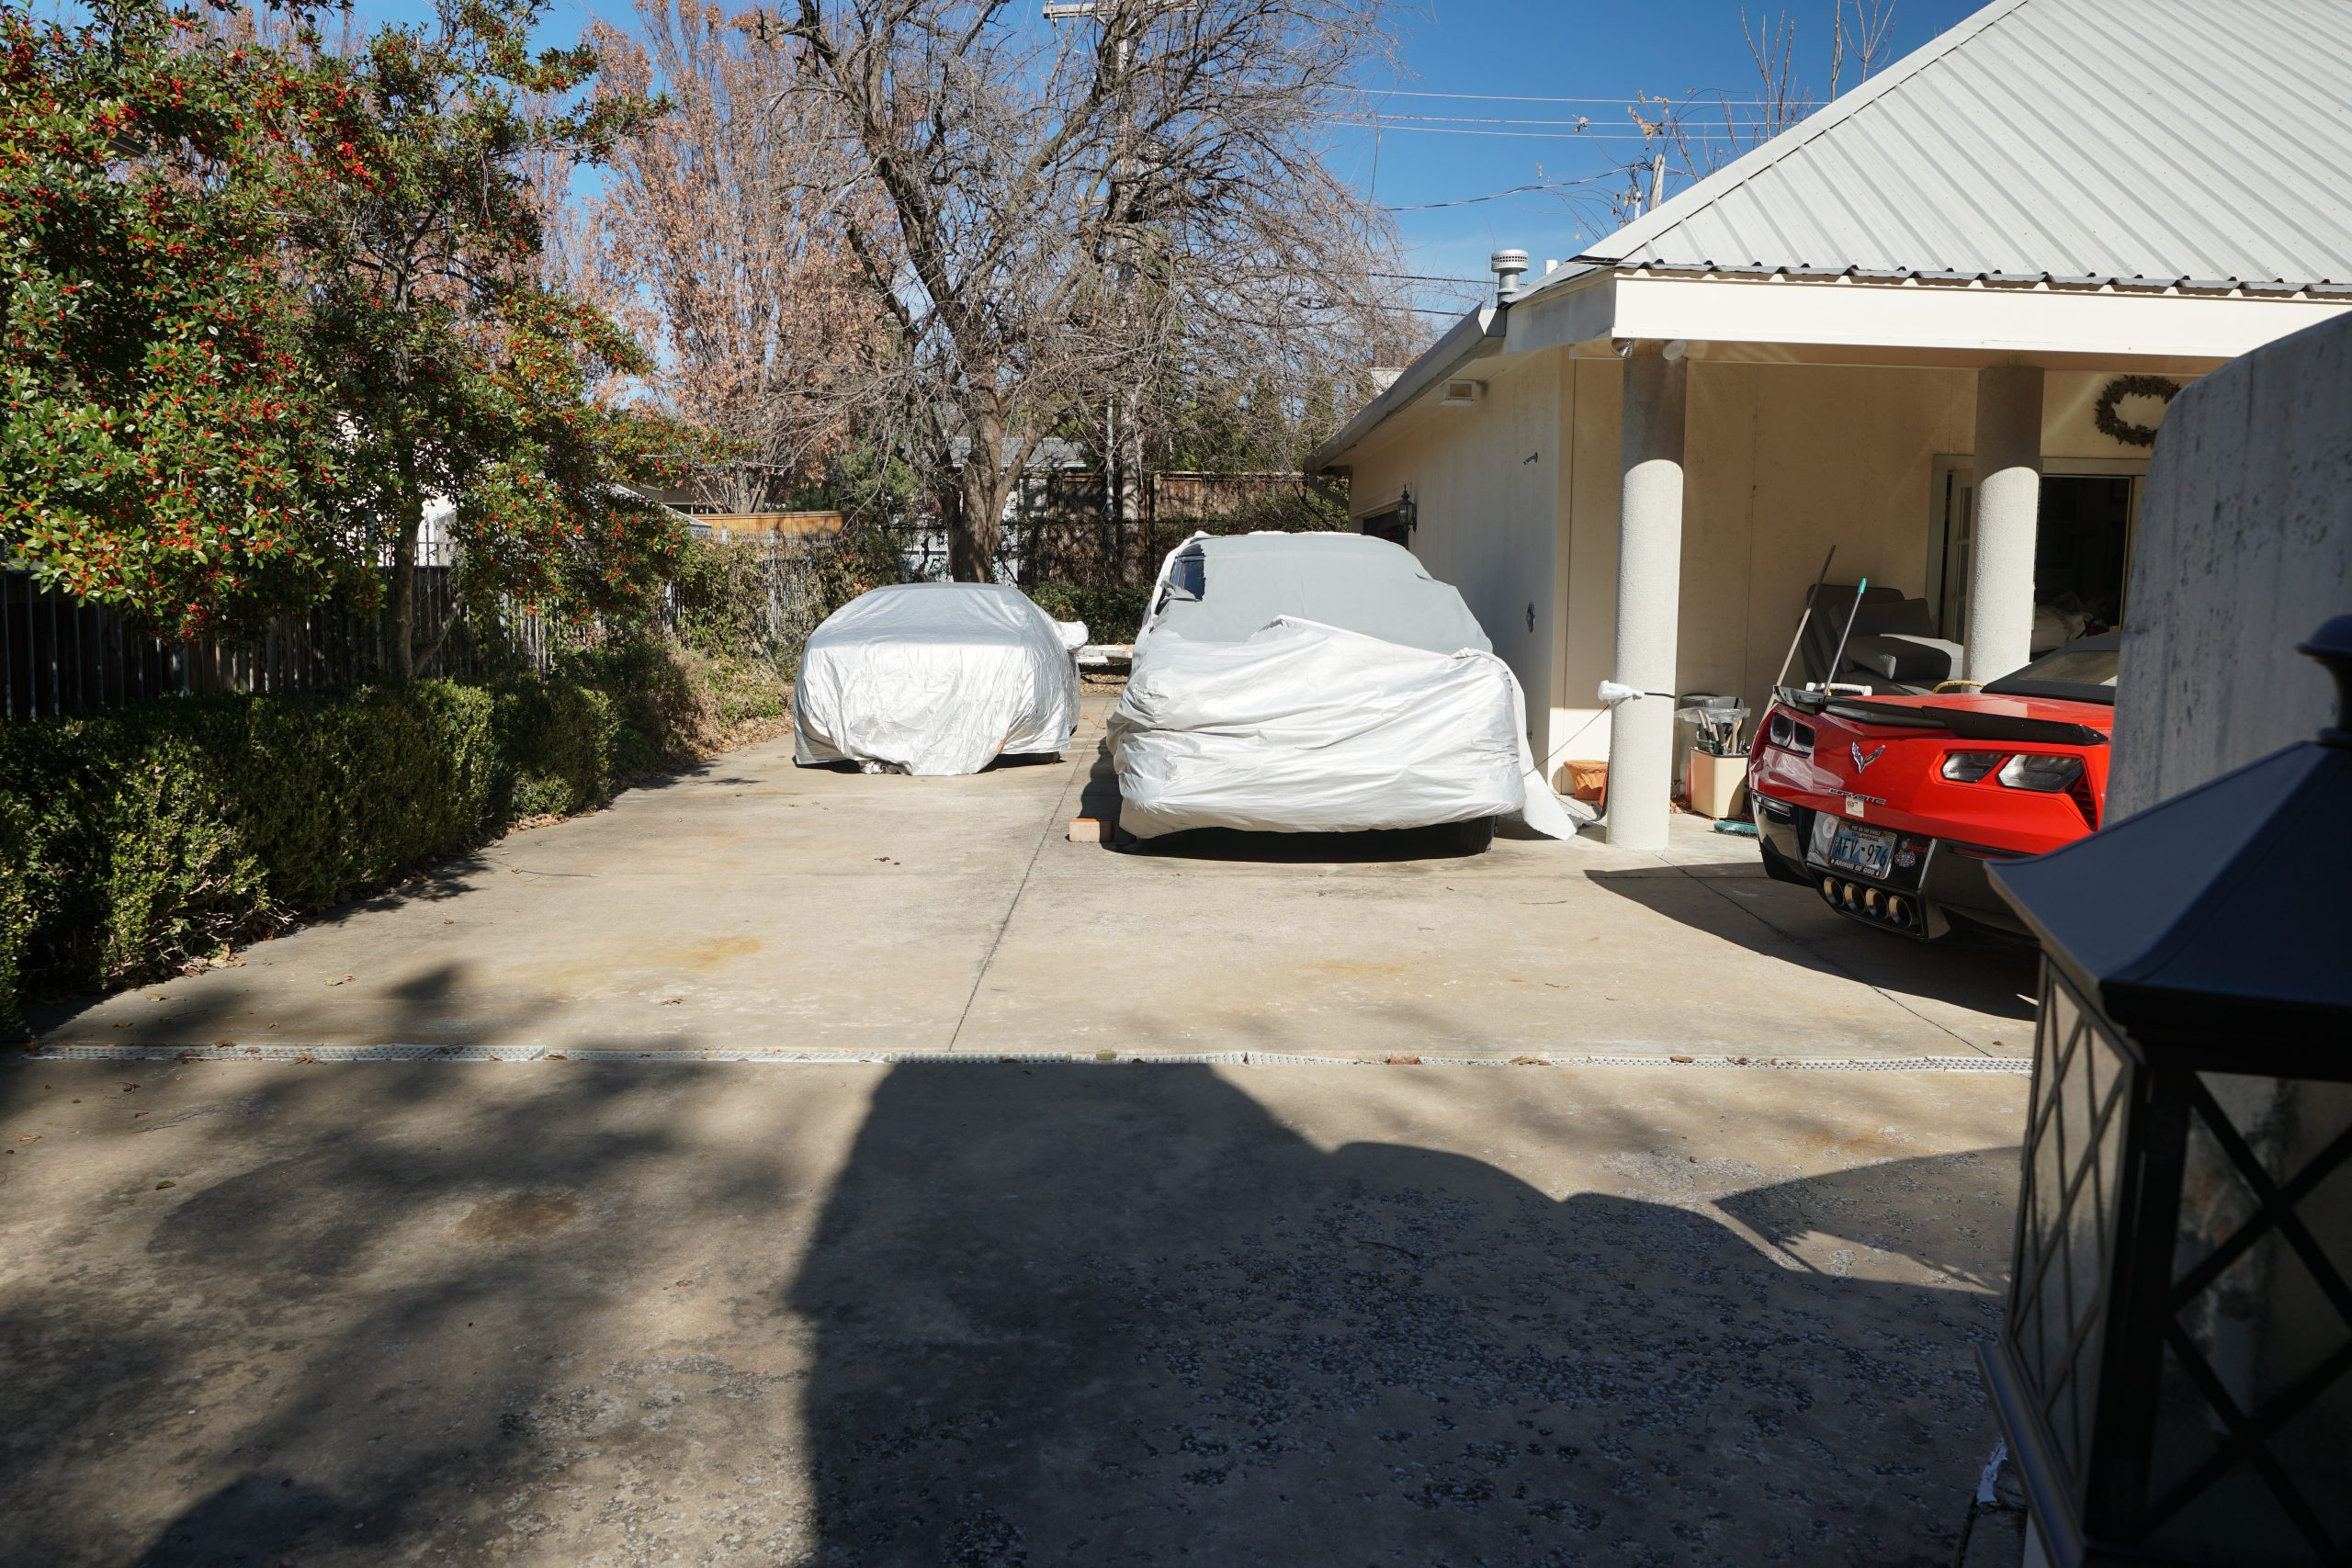 toly arutunoff driveway corvette packard limo mangusta